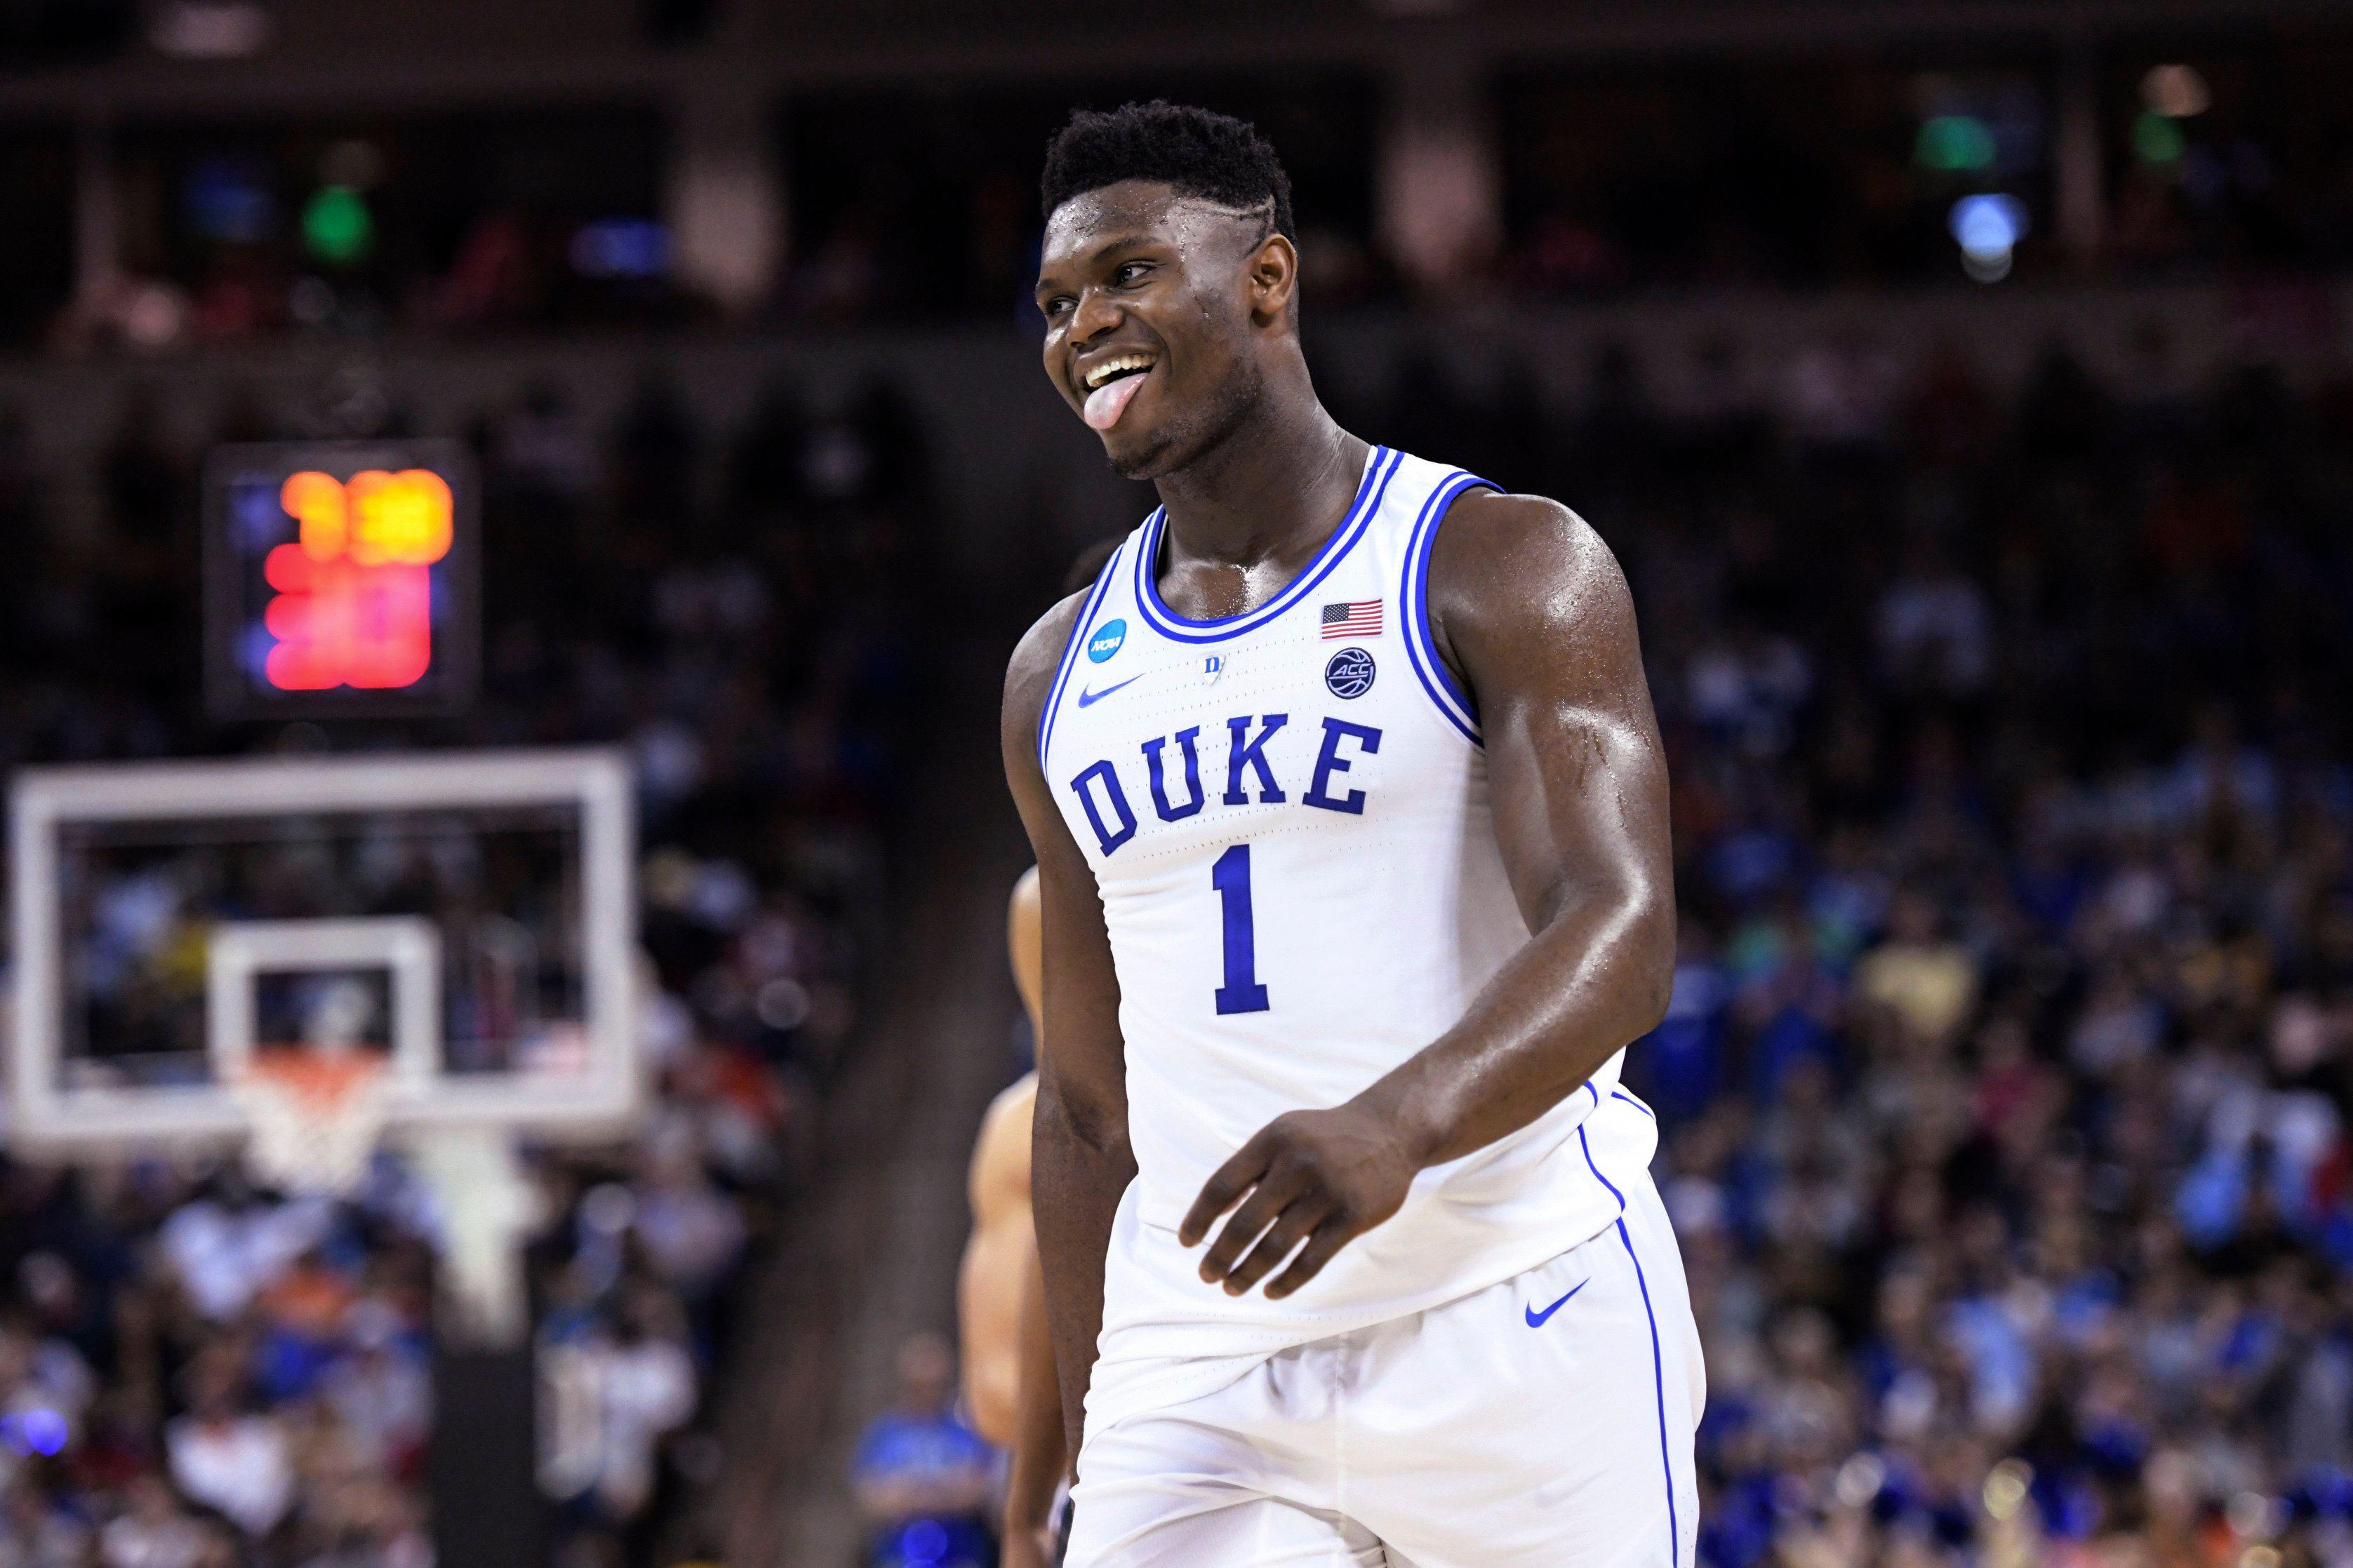 16 observations for the Sweet 16, including whether Duke is still the favorite